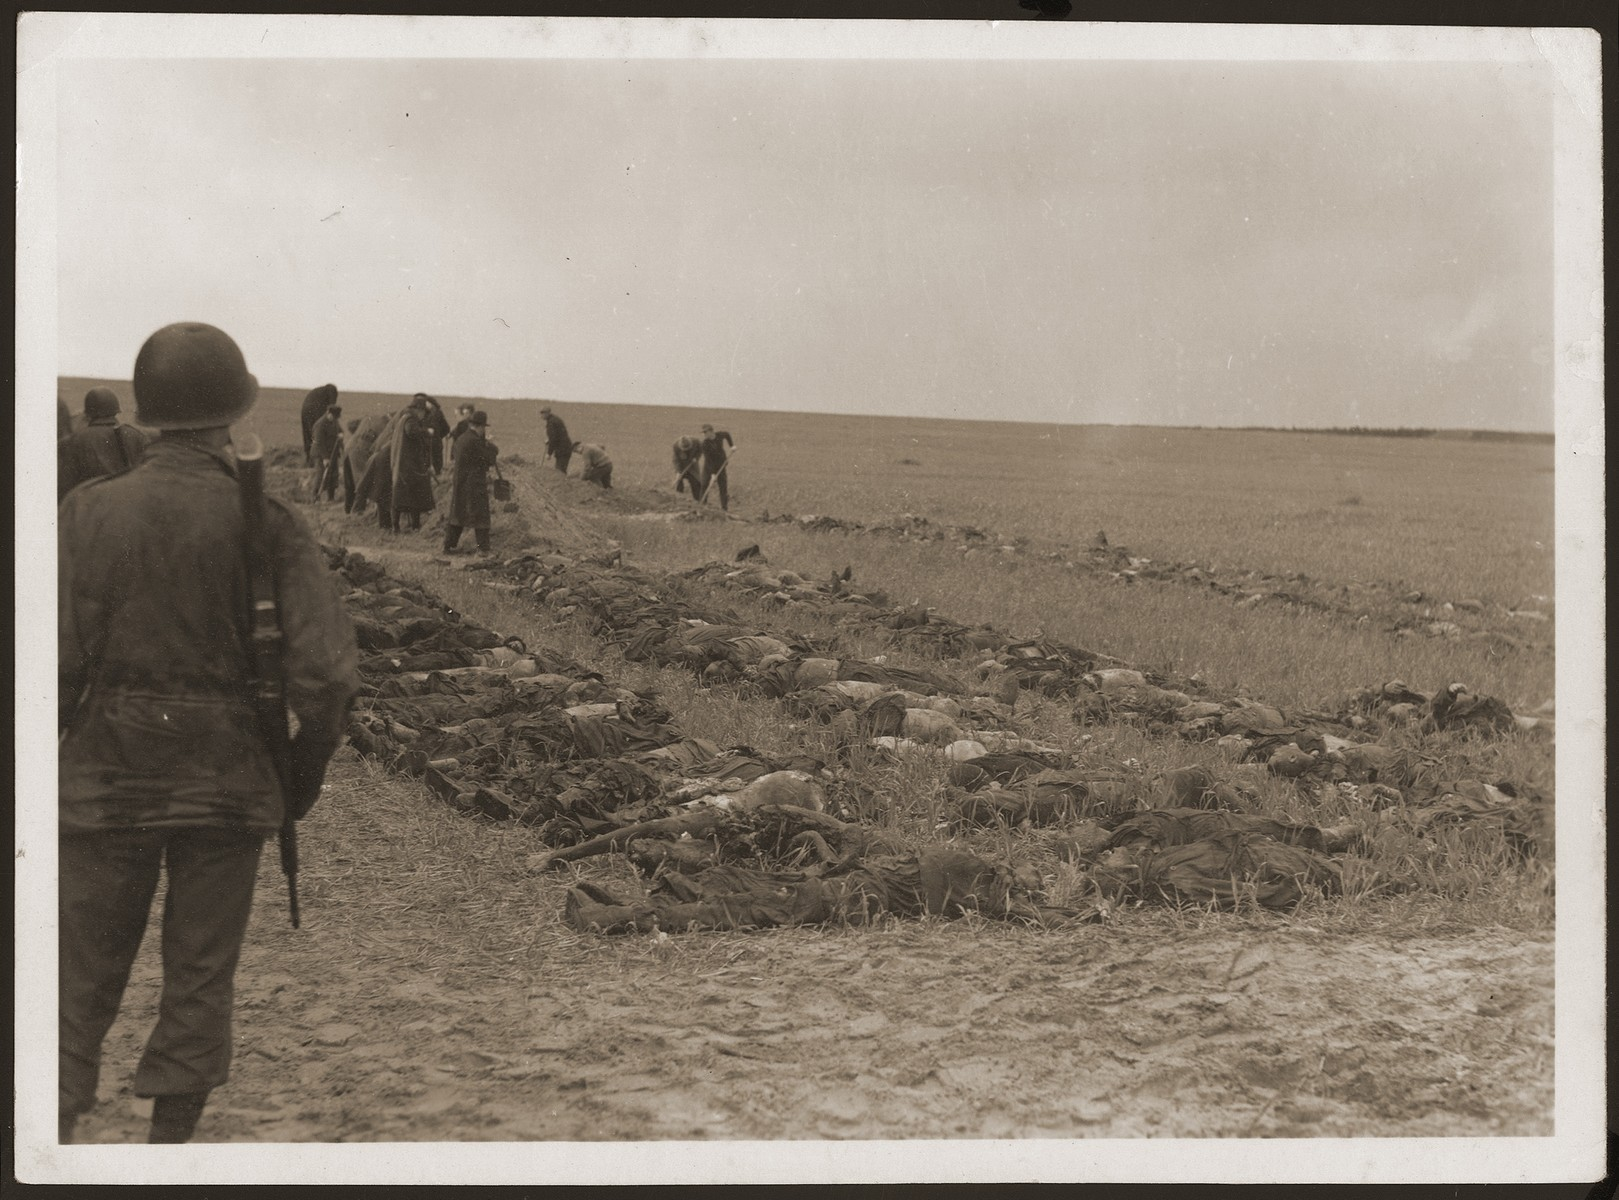 Under the supervision of American soldiers, German civilians from Gardelegen dig graves for the bodies of prisoners killed by the SS in a barn just outside the town.